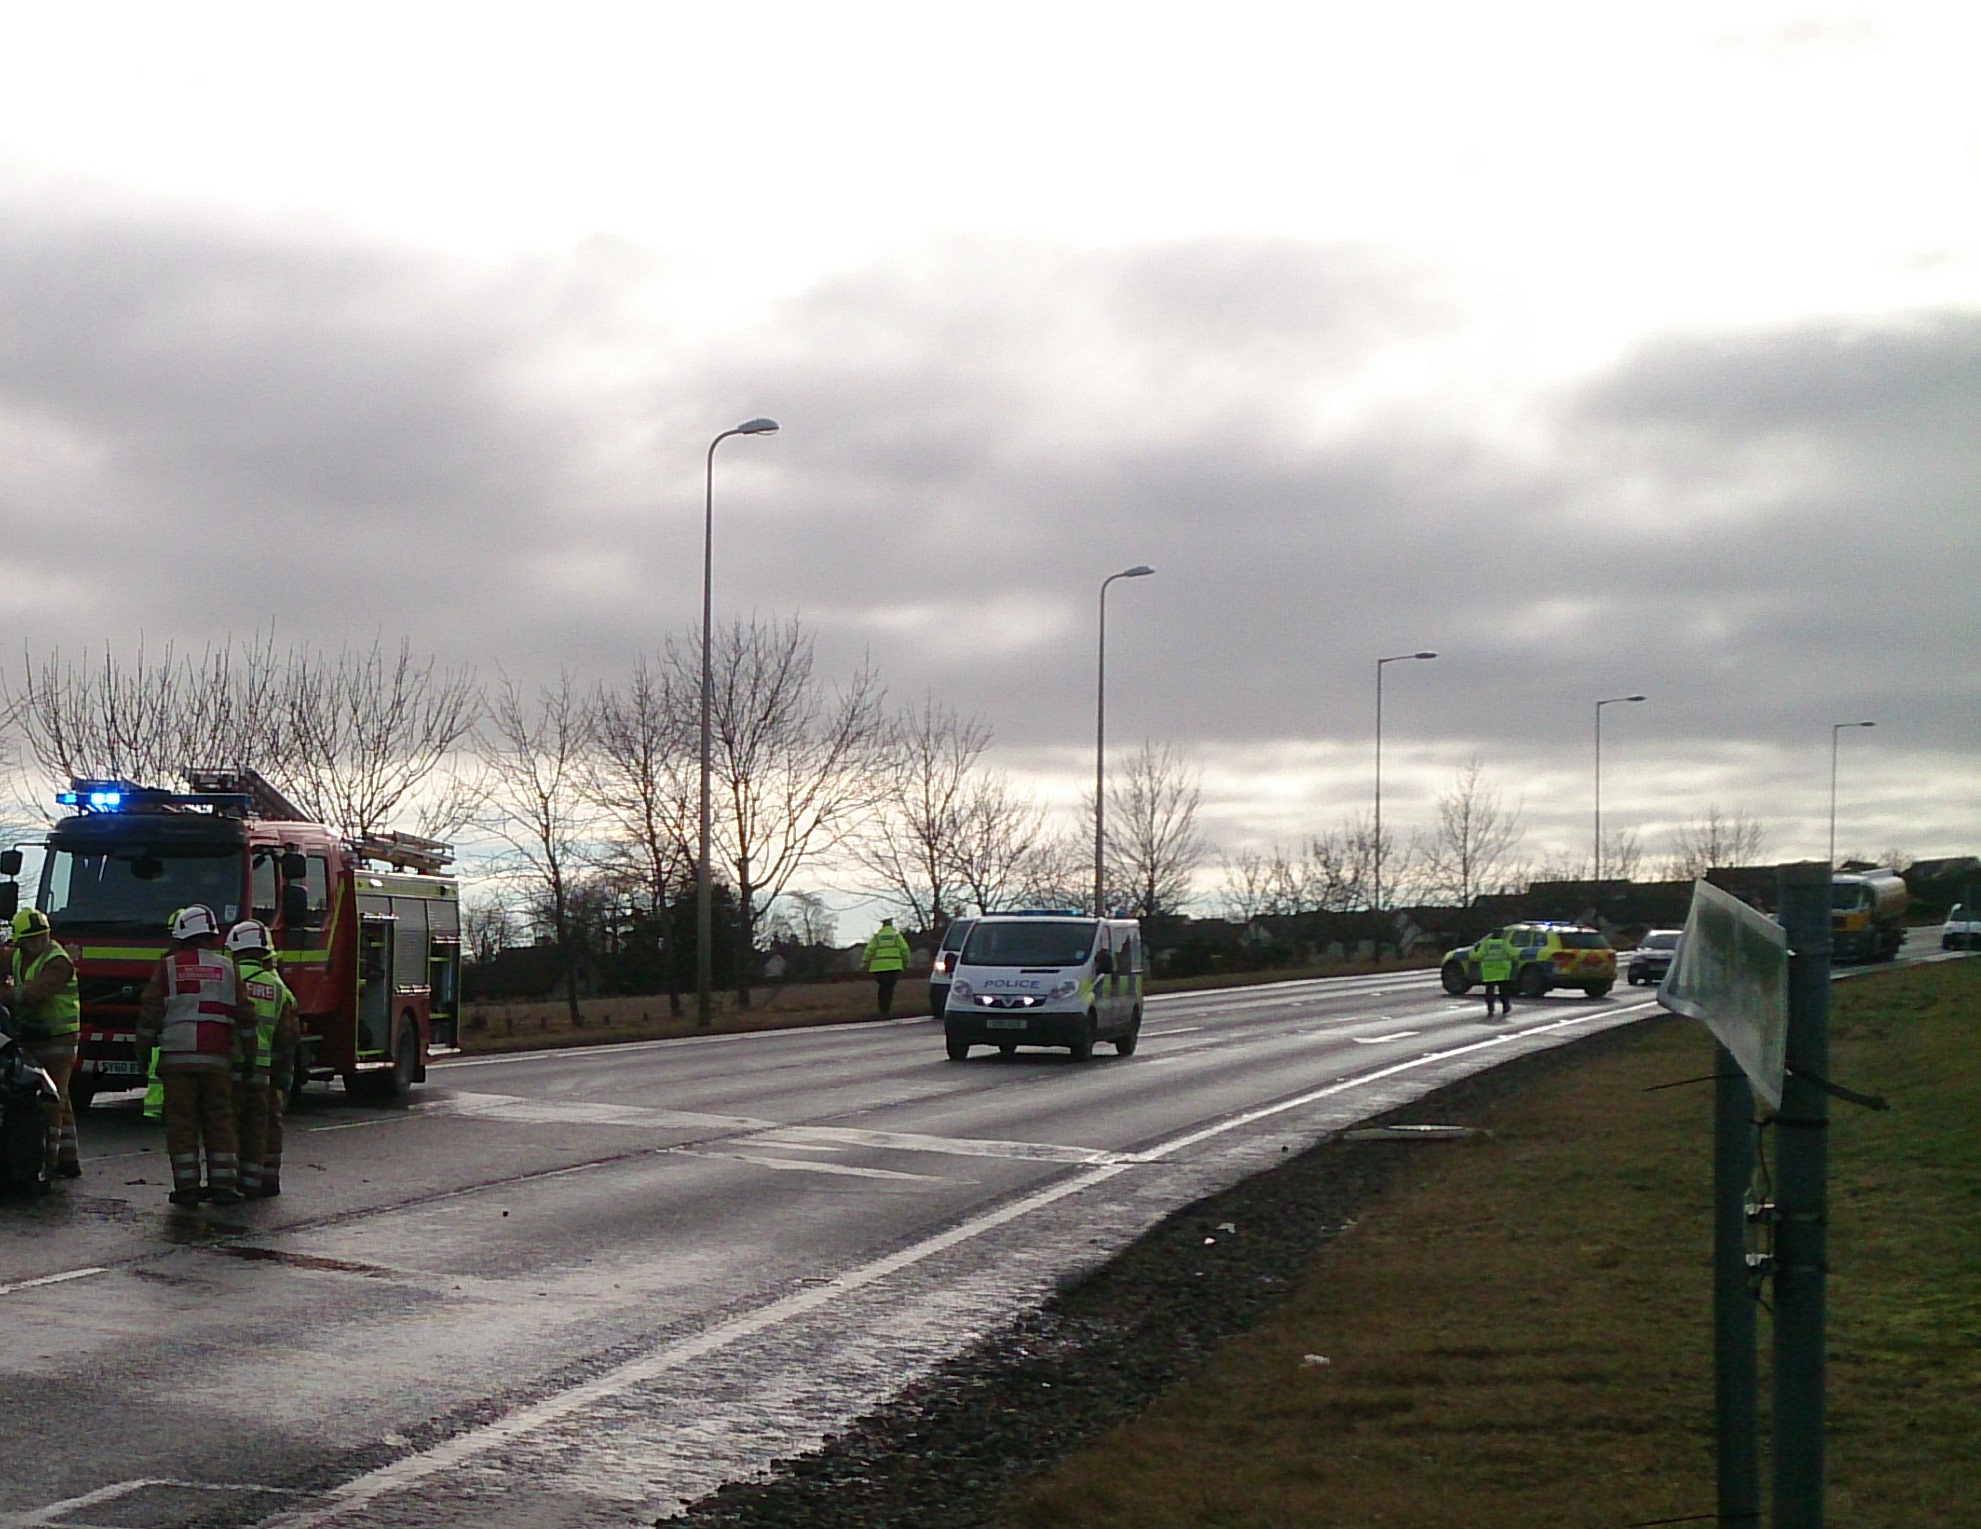 Multi-agency response to four vehicle road traffic collision praised by fire officer